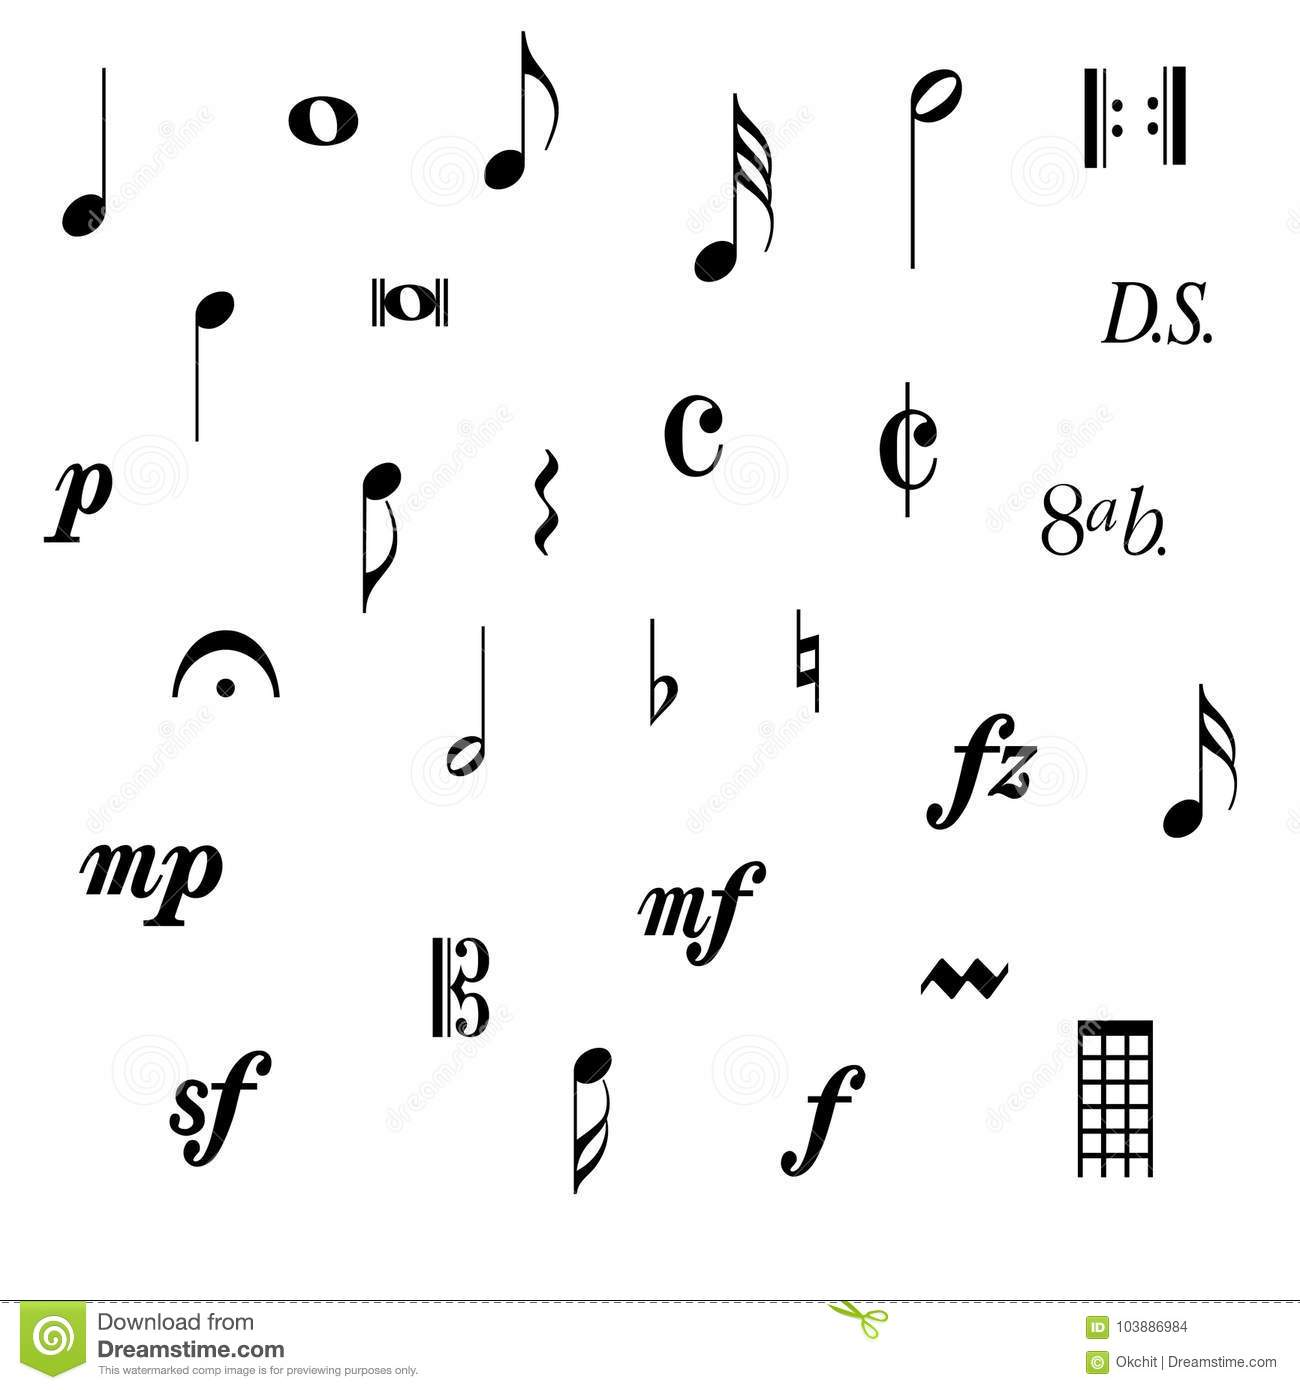 Music Note Symbols stock vector. Illustration of stave